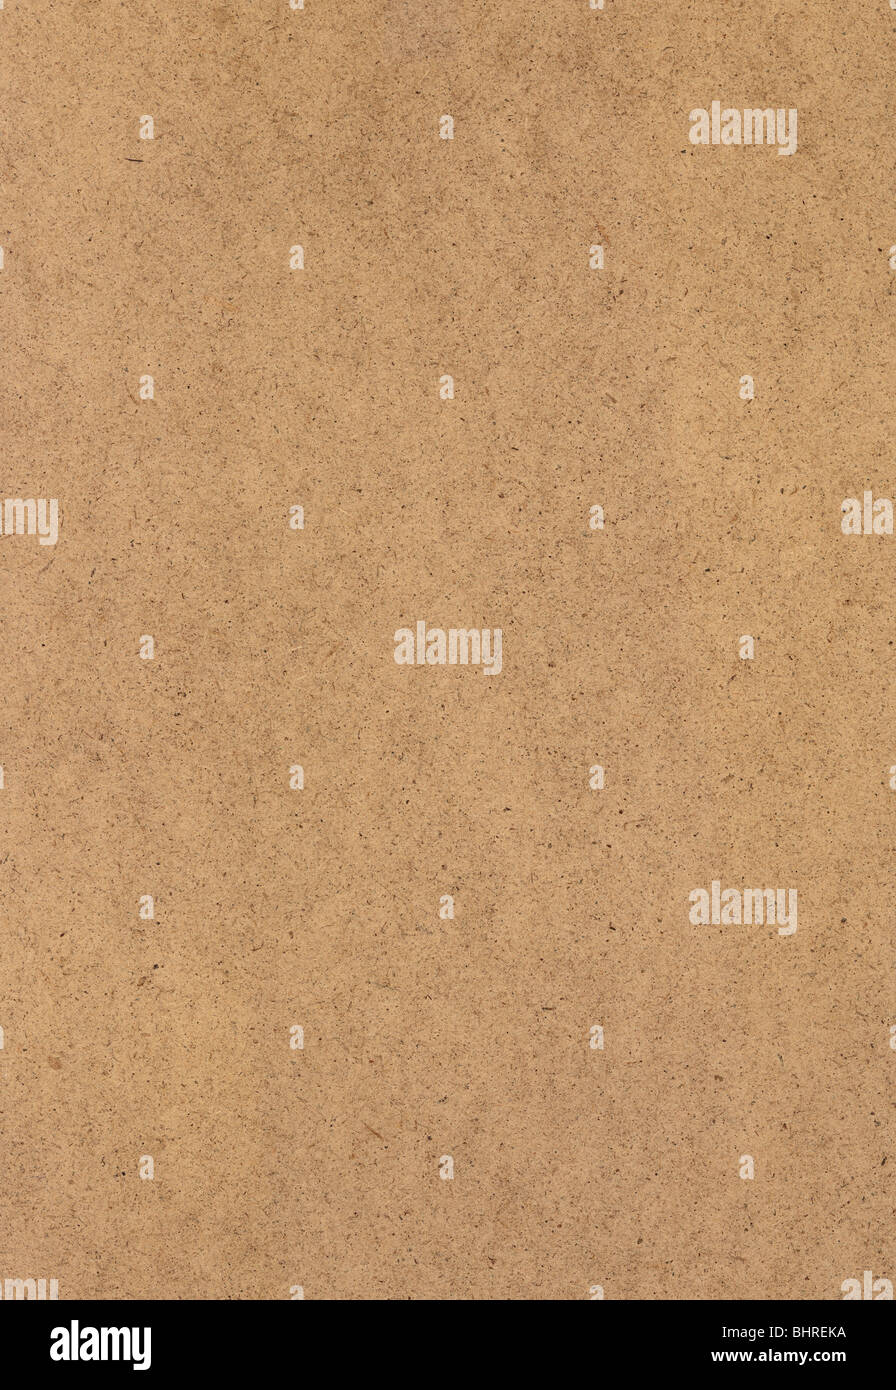 Сardboard sheet plain flat texture surface. NATIVE SIZE, NOT UPSCALED. - Stock Image